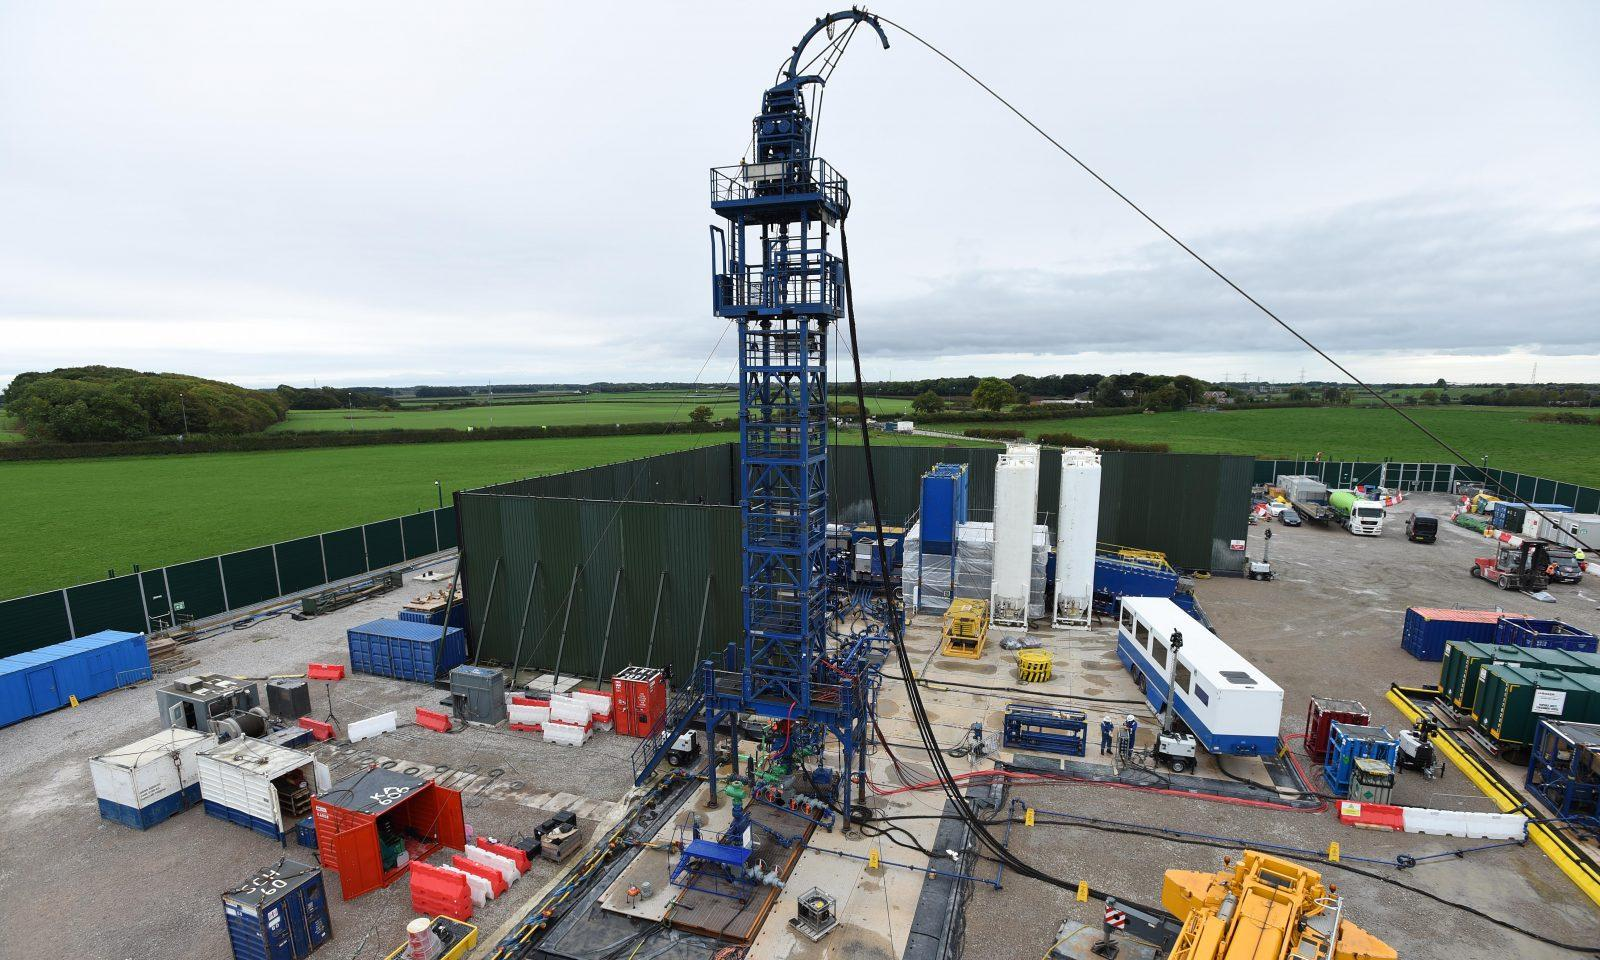 Shale gas fracking wasted 'millions of taxpayers' cash', say scientists